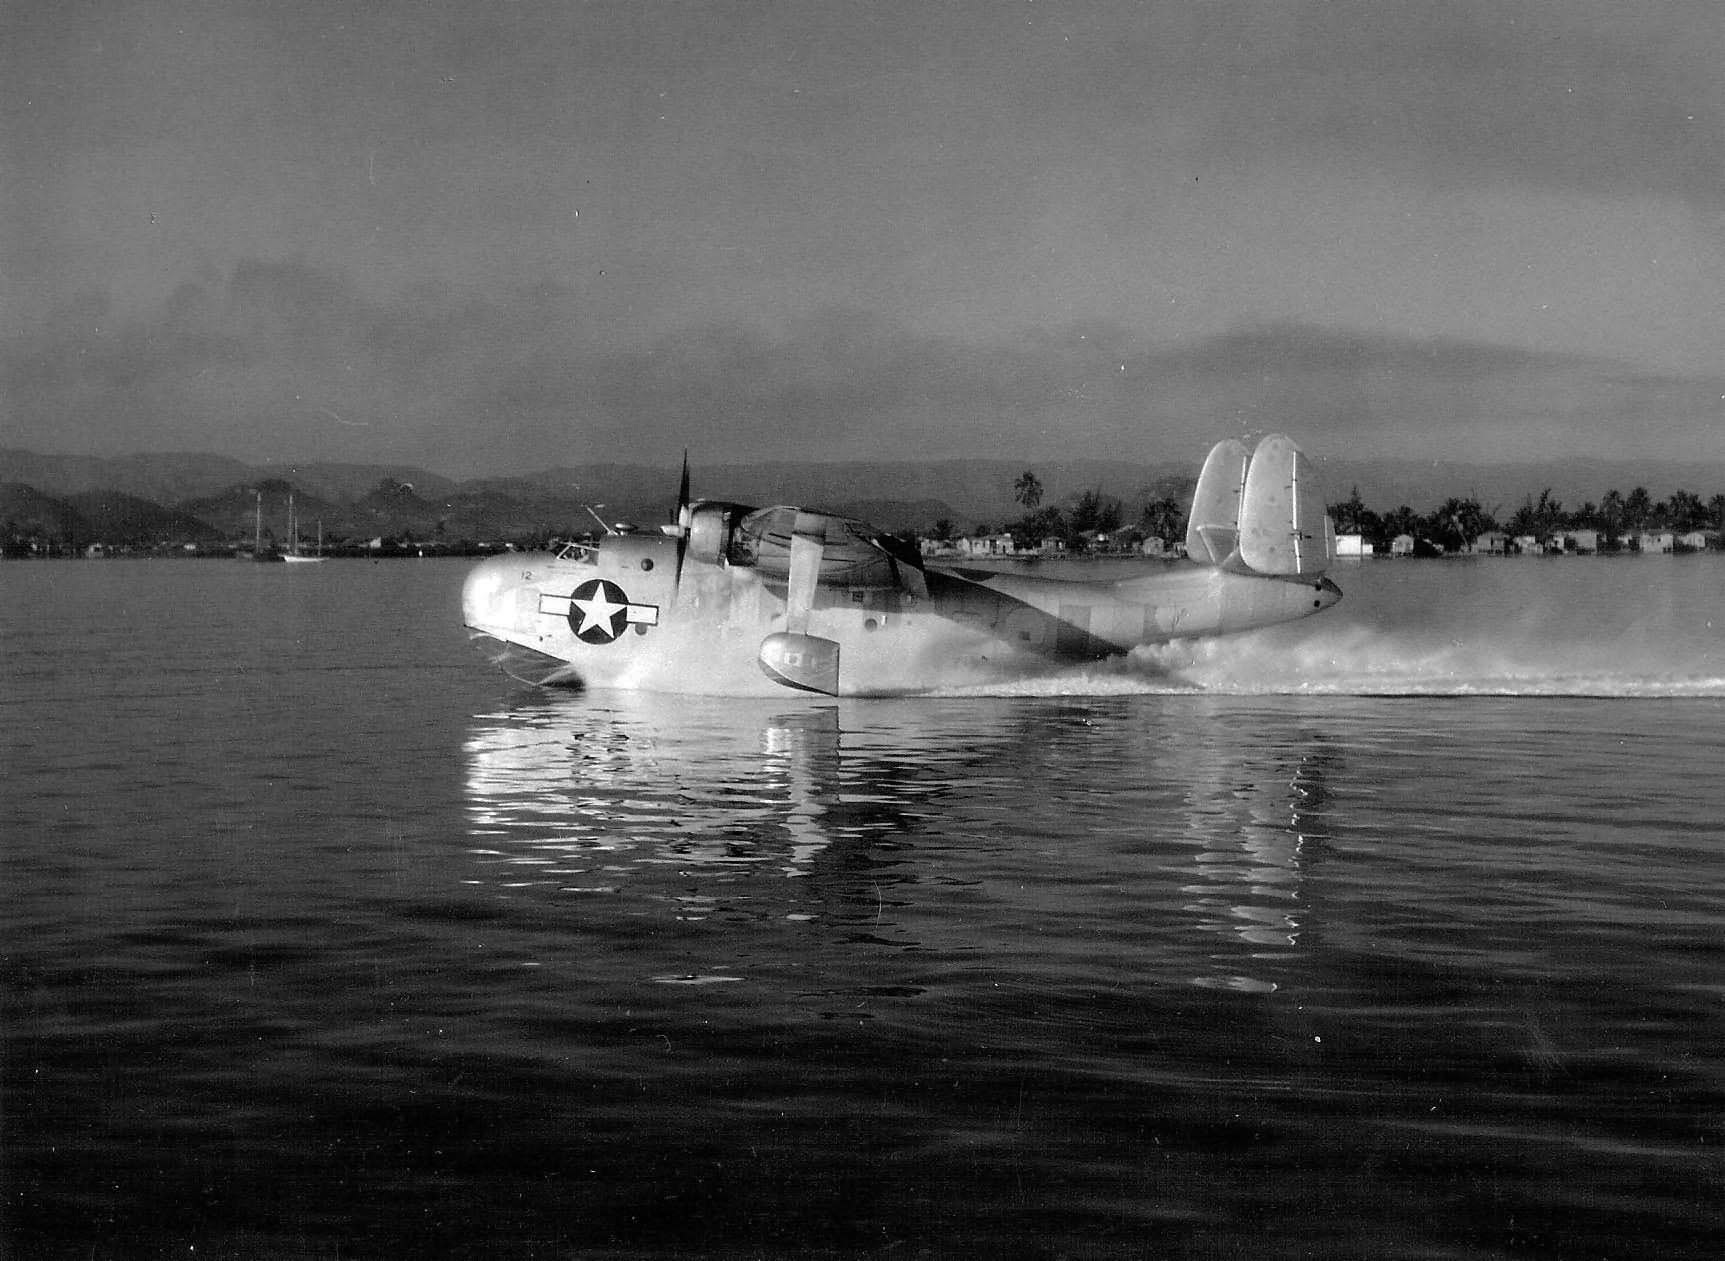 Mariner taxis in the waters off nas san juan puerto rico 16 july 1945